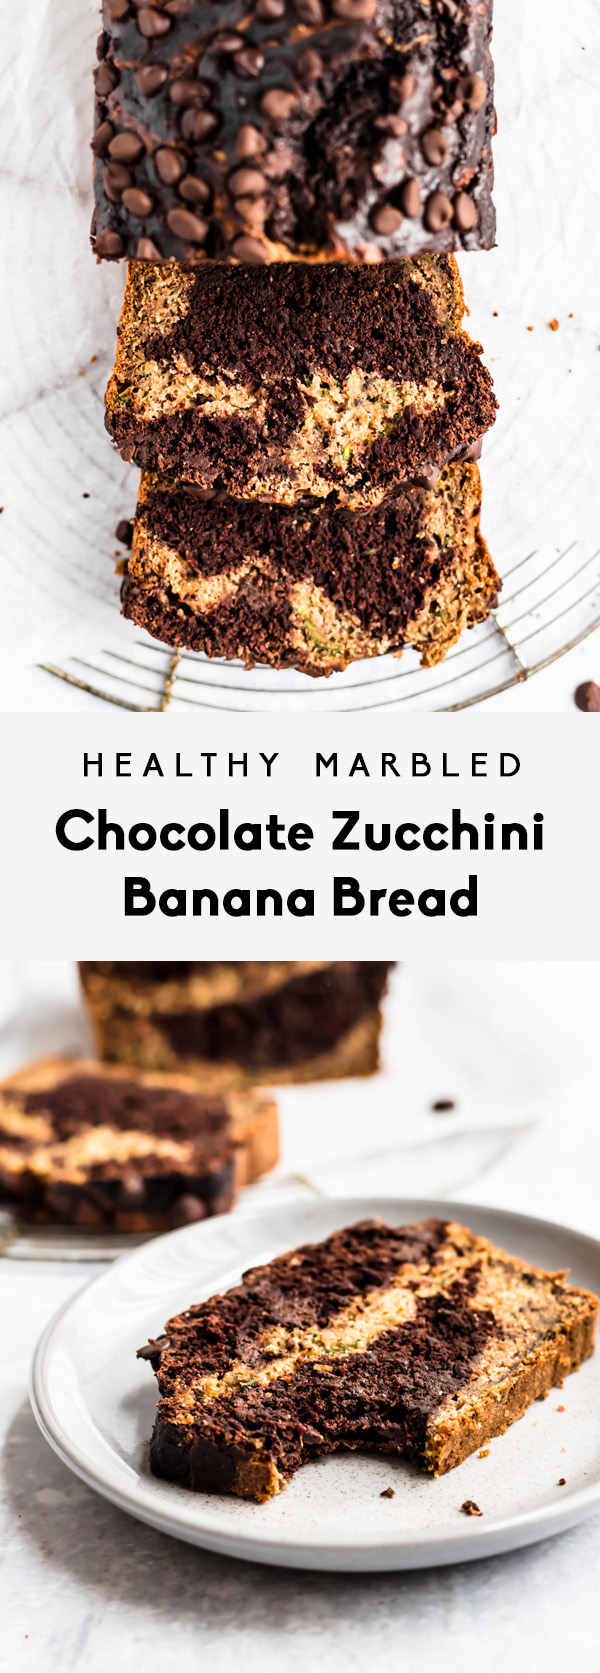 collage of chocolate zucchini banana bread sliced and on a plate